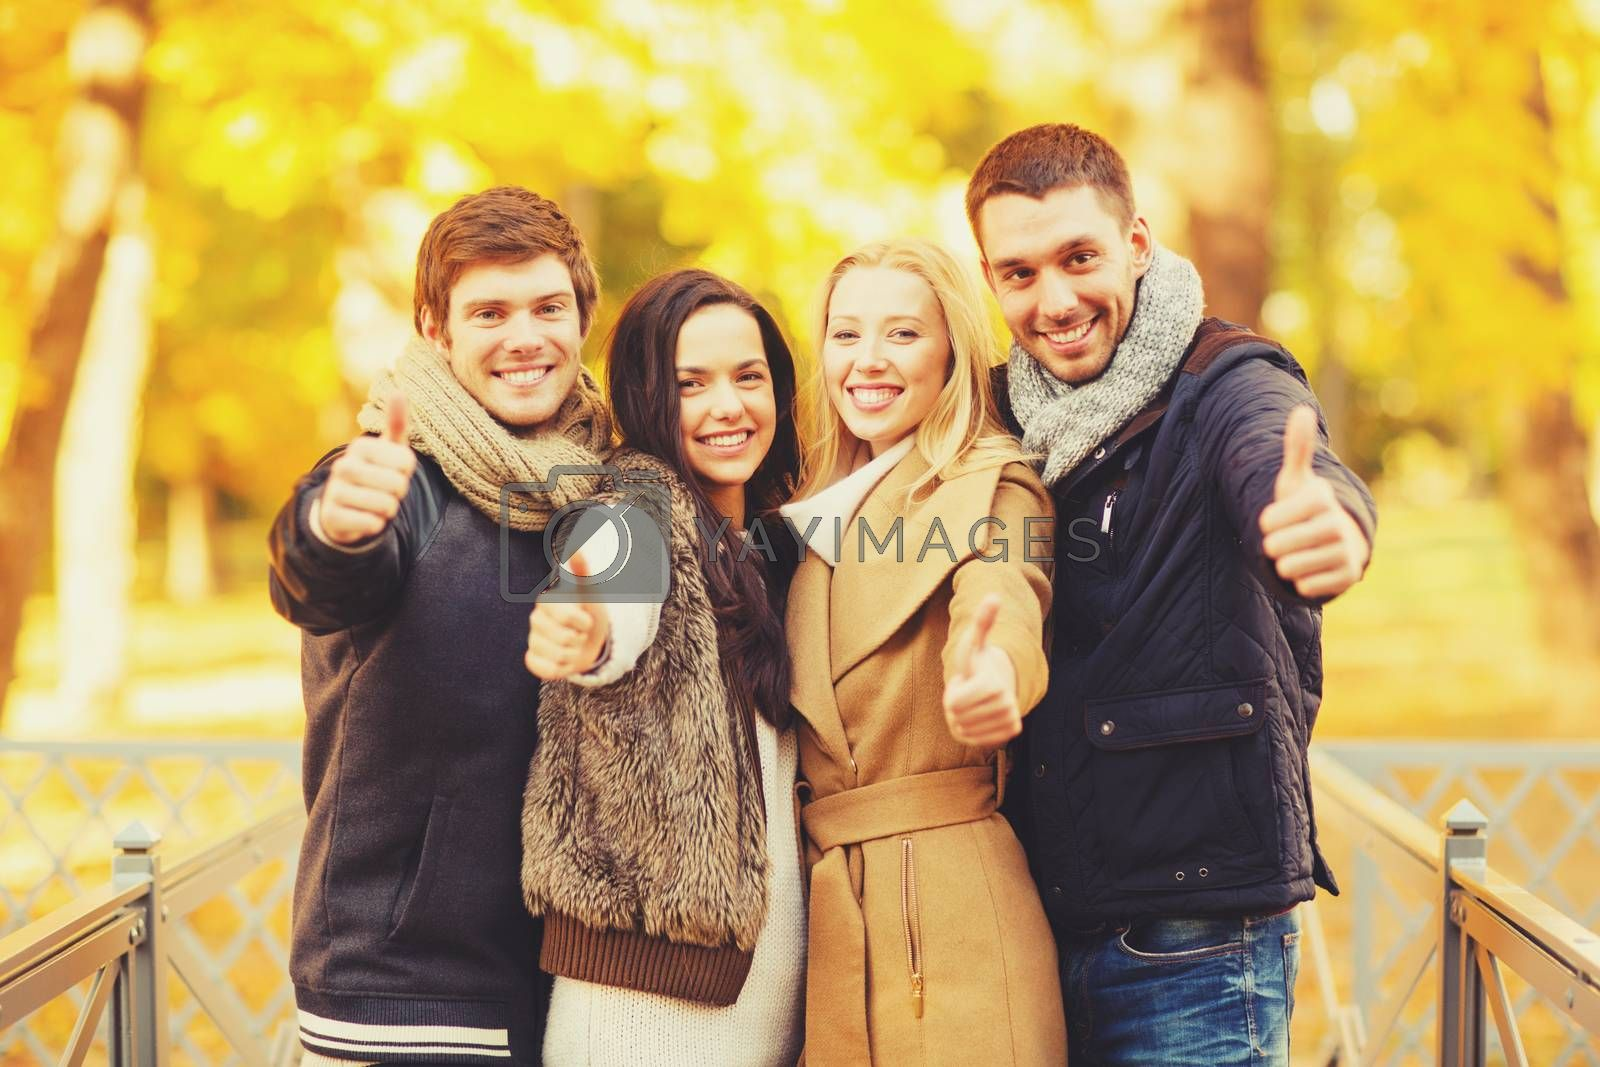 summer, holidays, vacation, happy people concept - group of friends or couples having fun and showing thumbs up in autumn park